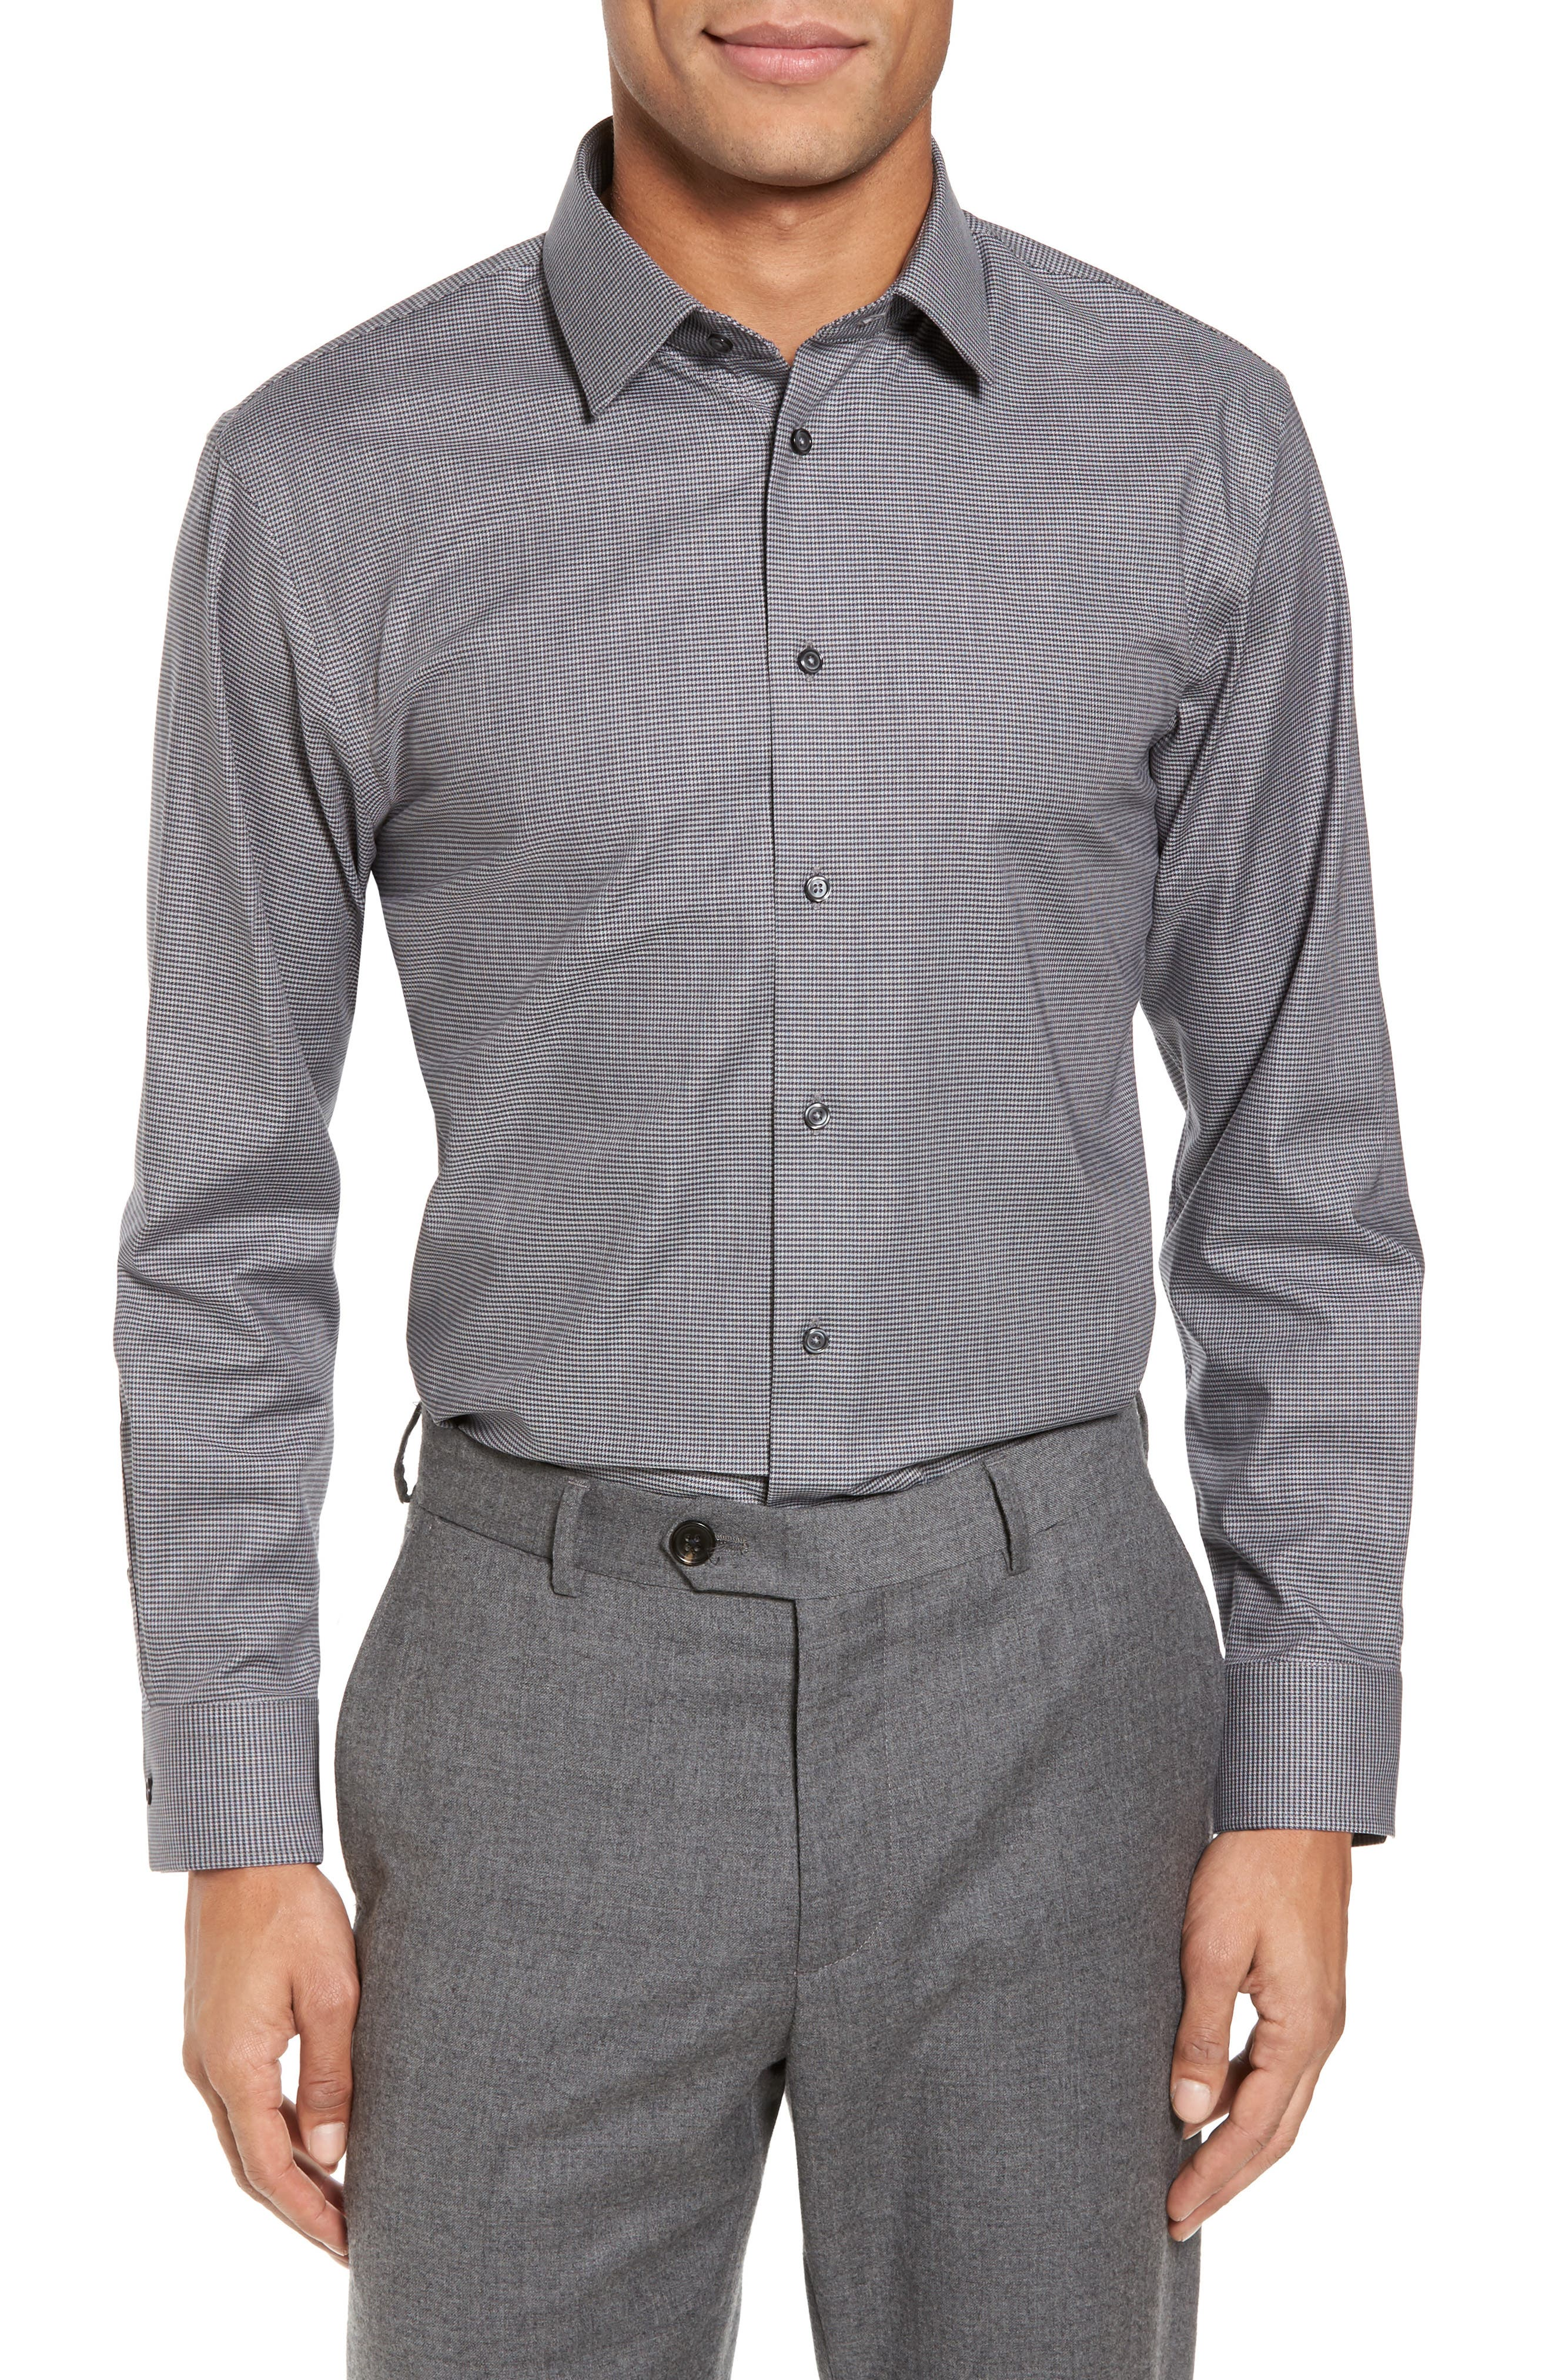 Trim Fit No-Iron Micro Houndstooth Stretch Dress Shirt,                             Main thumbnail 1, color,                             021